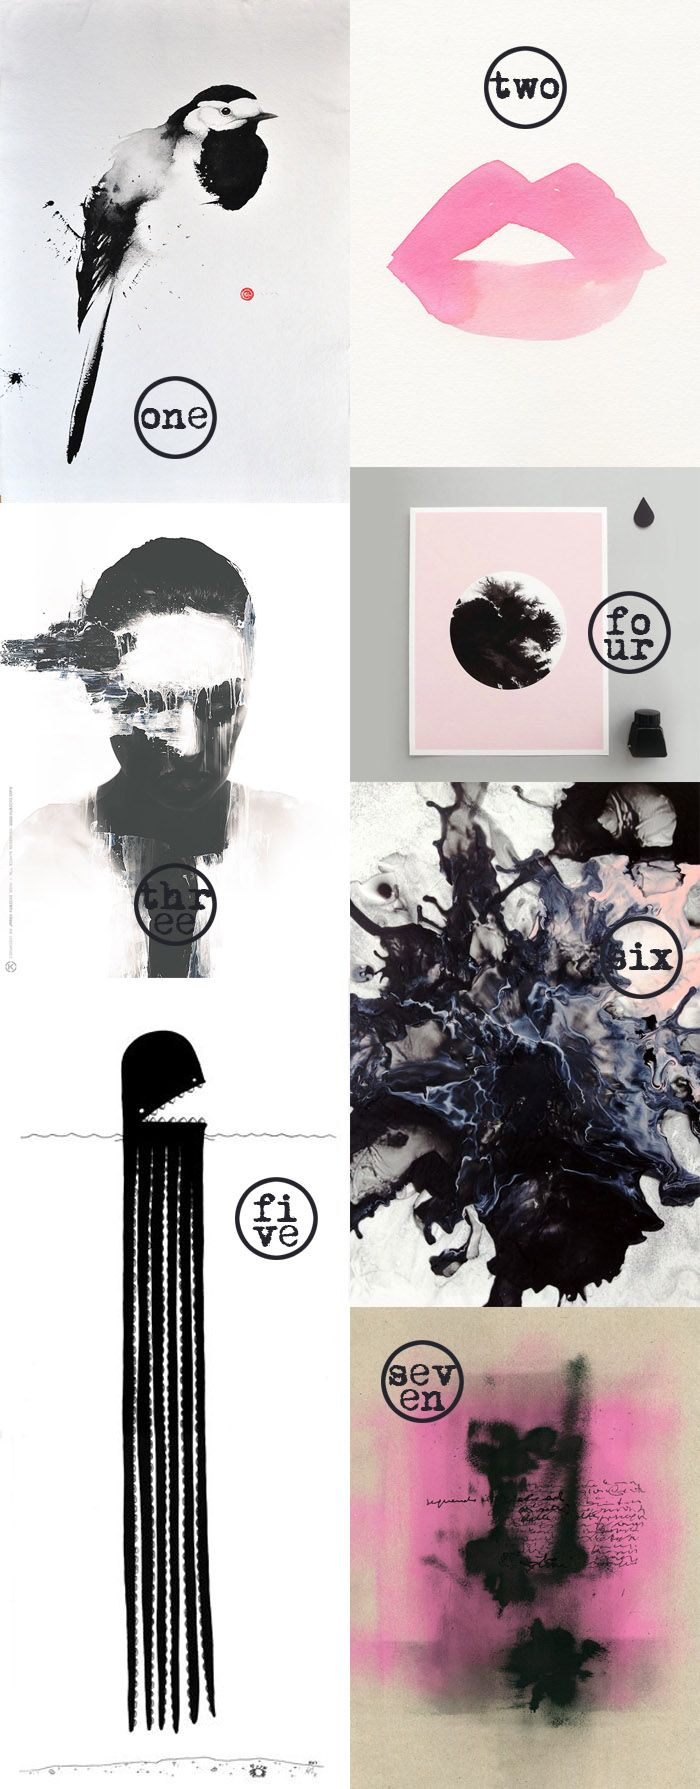 Art Inspiration: May 1. Karl Mårtens | 2. Jason Brooks | 3. Jarek Kubicki | 4. Sketch ink | 5. Keith Noordzy | 6. Michael Chase | 7. Emilio Nanni